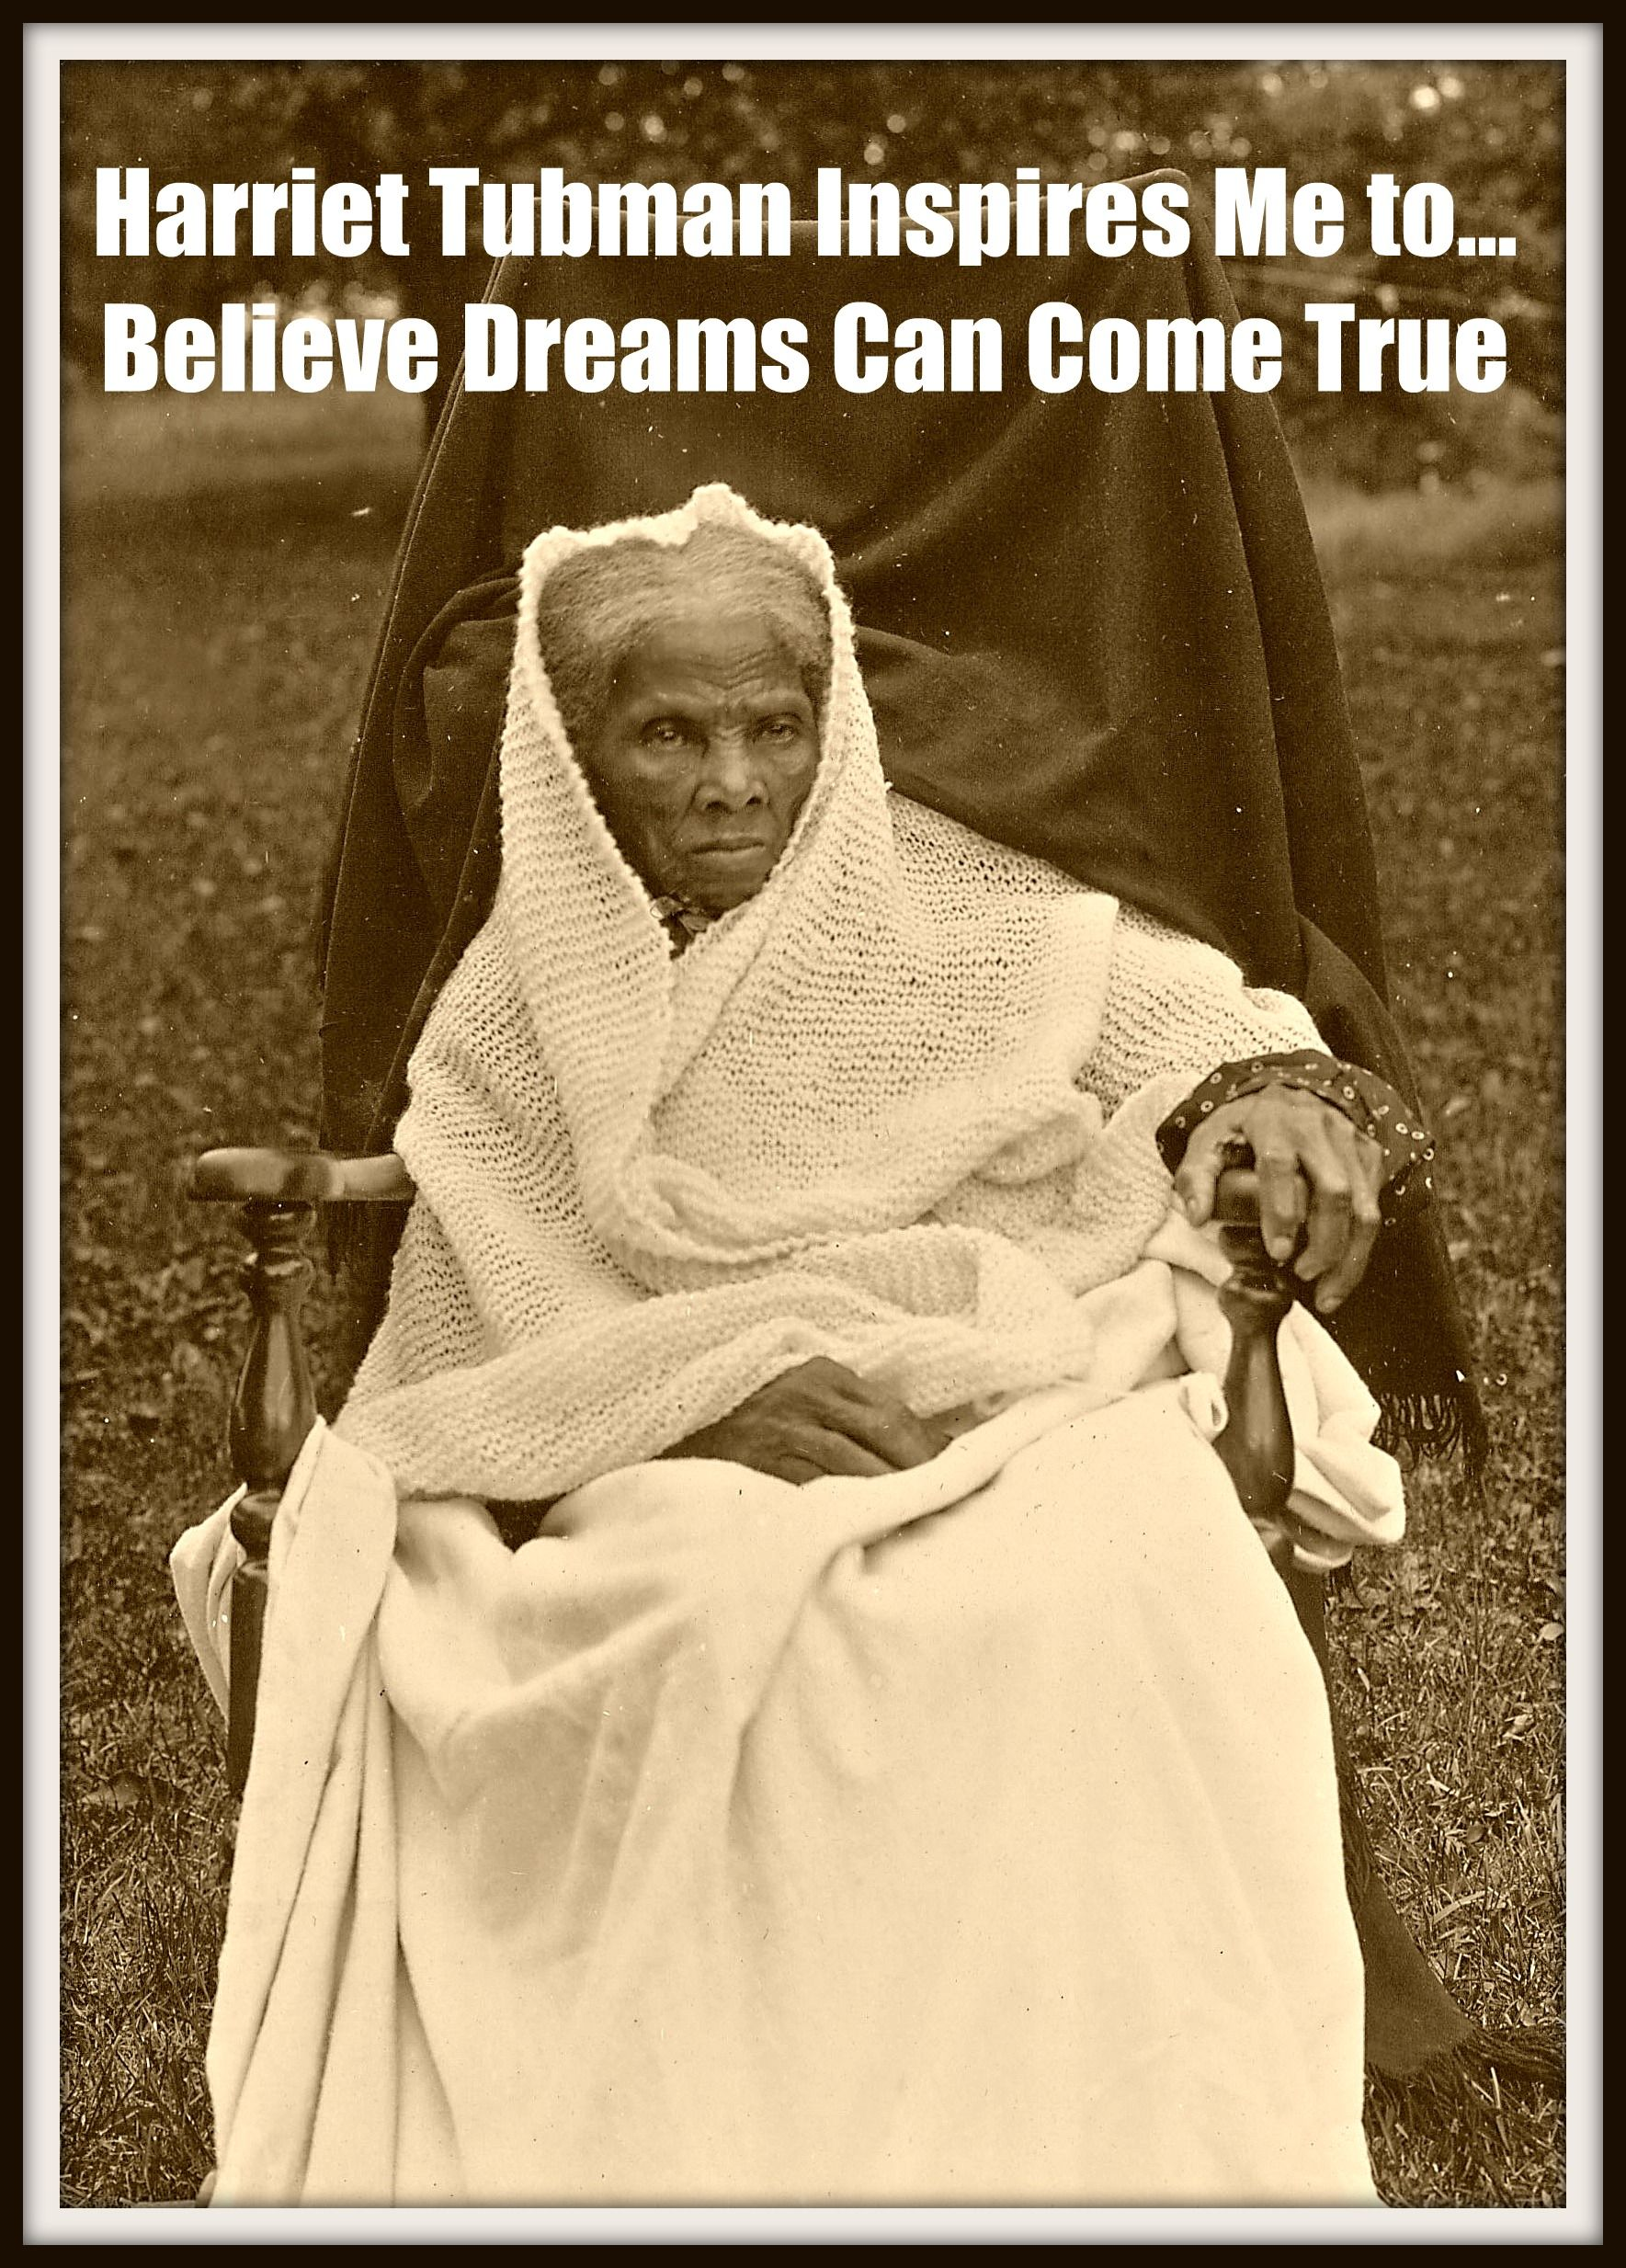 Inspirational Lessons From Harriet Tubman With Images